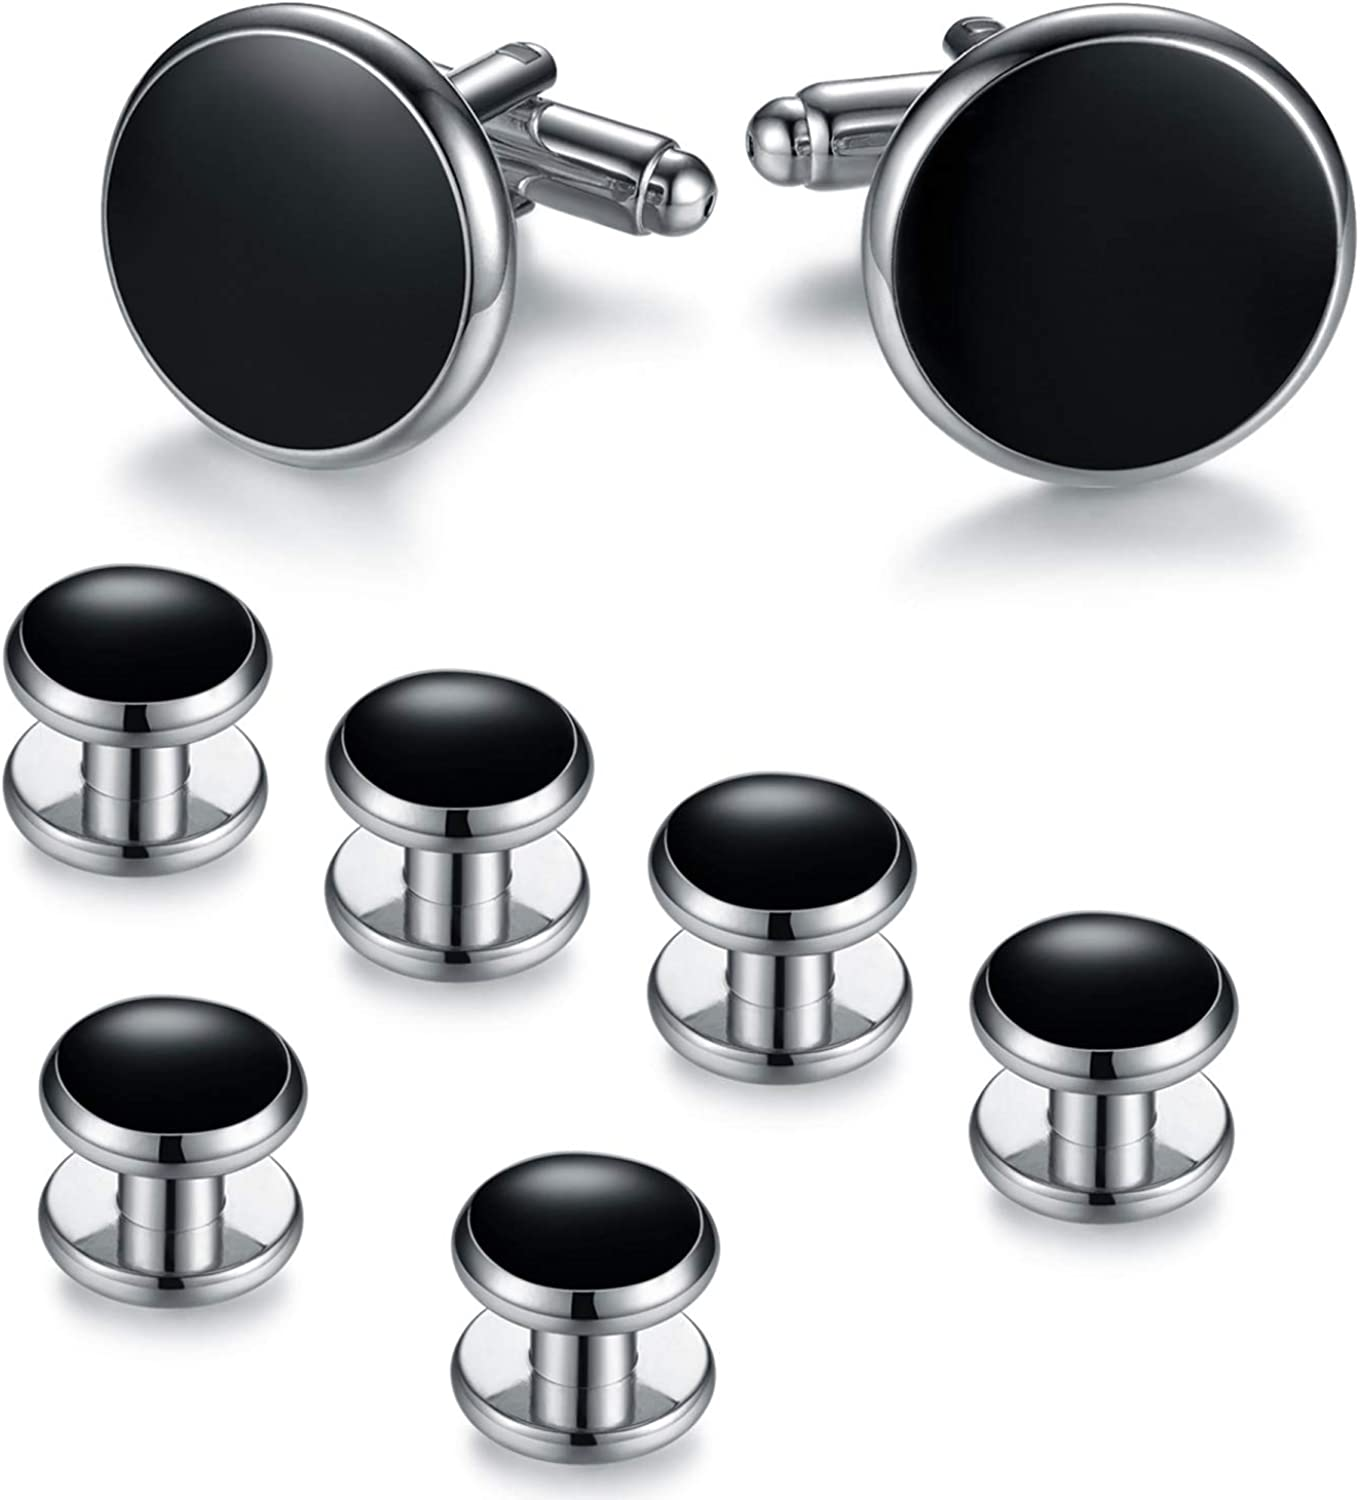 BodyJ4You Tuxedo Cufflinks Shirt Button Studs Men Set Formal Business Classic Wedding Jewelry